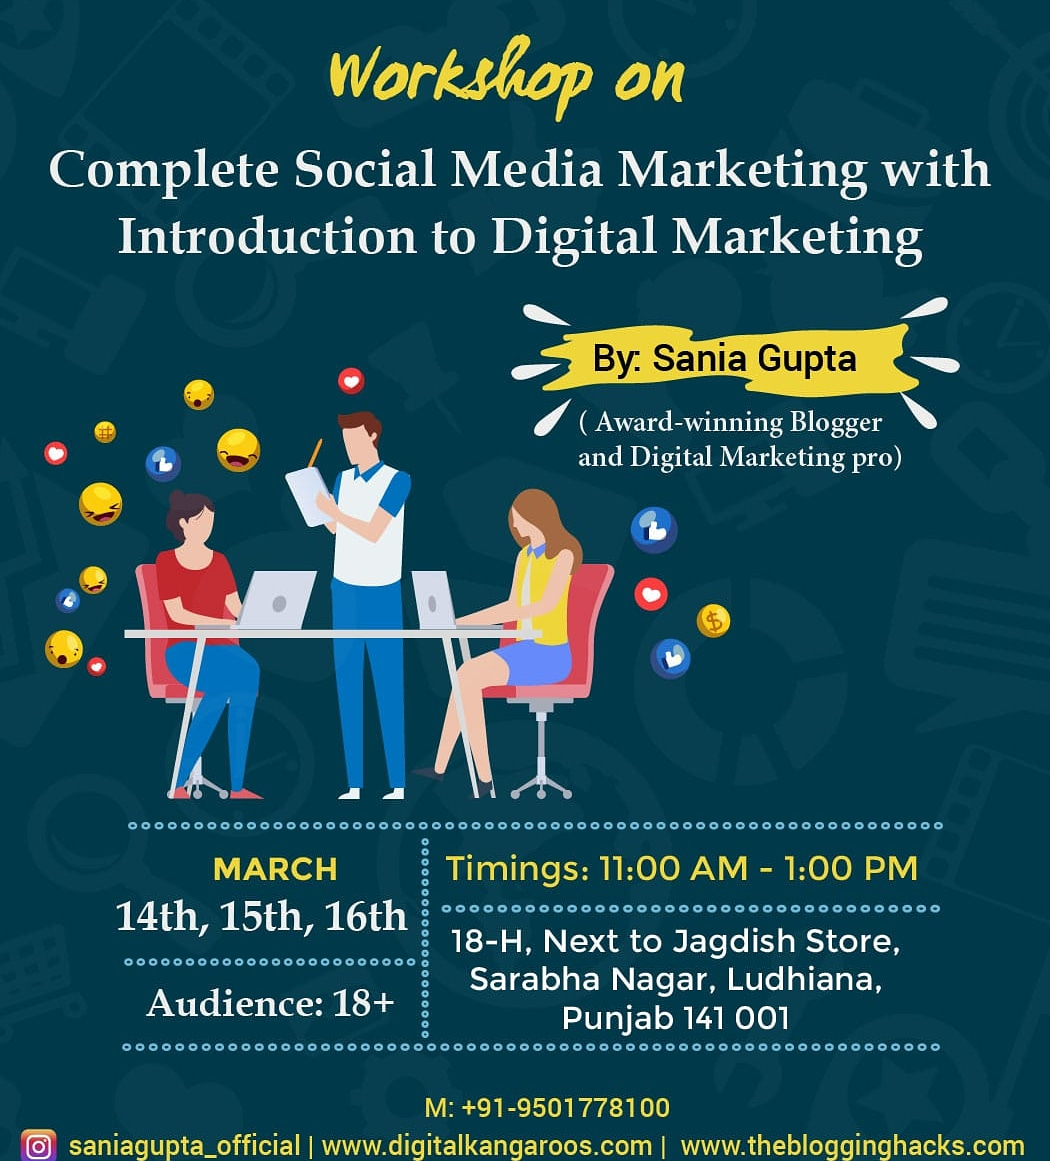 Workshop on Social Media Marketing